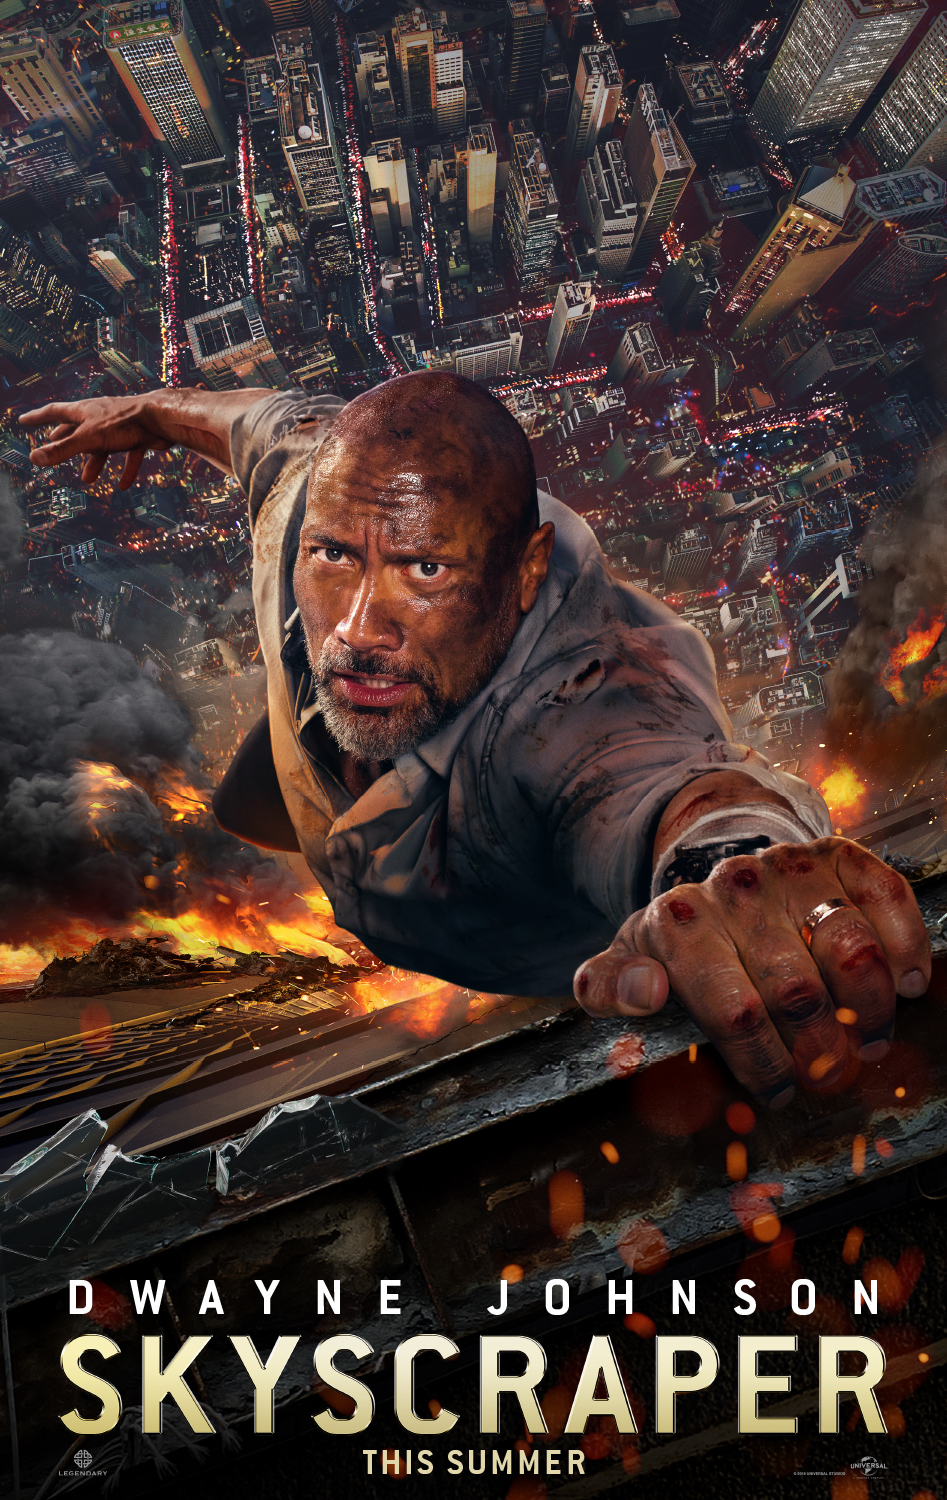 Skyscraper Dwayne Johnson Official Movie Poster